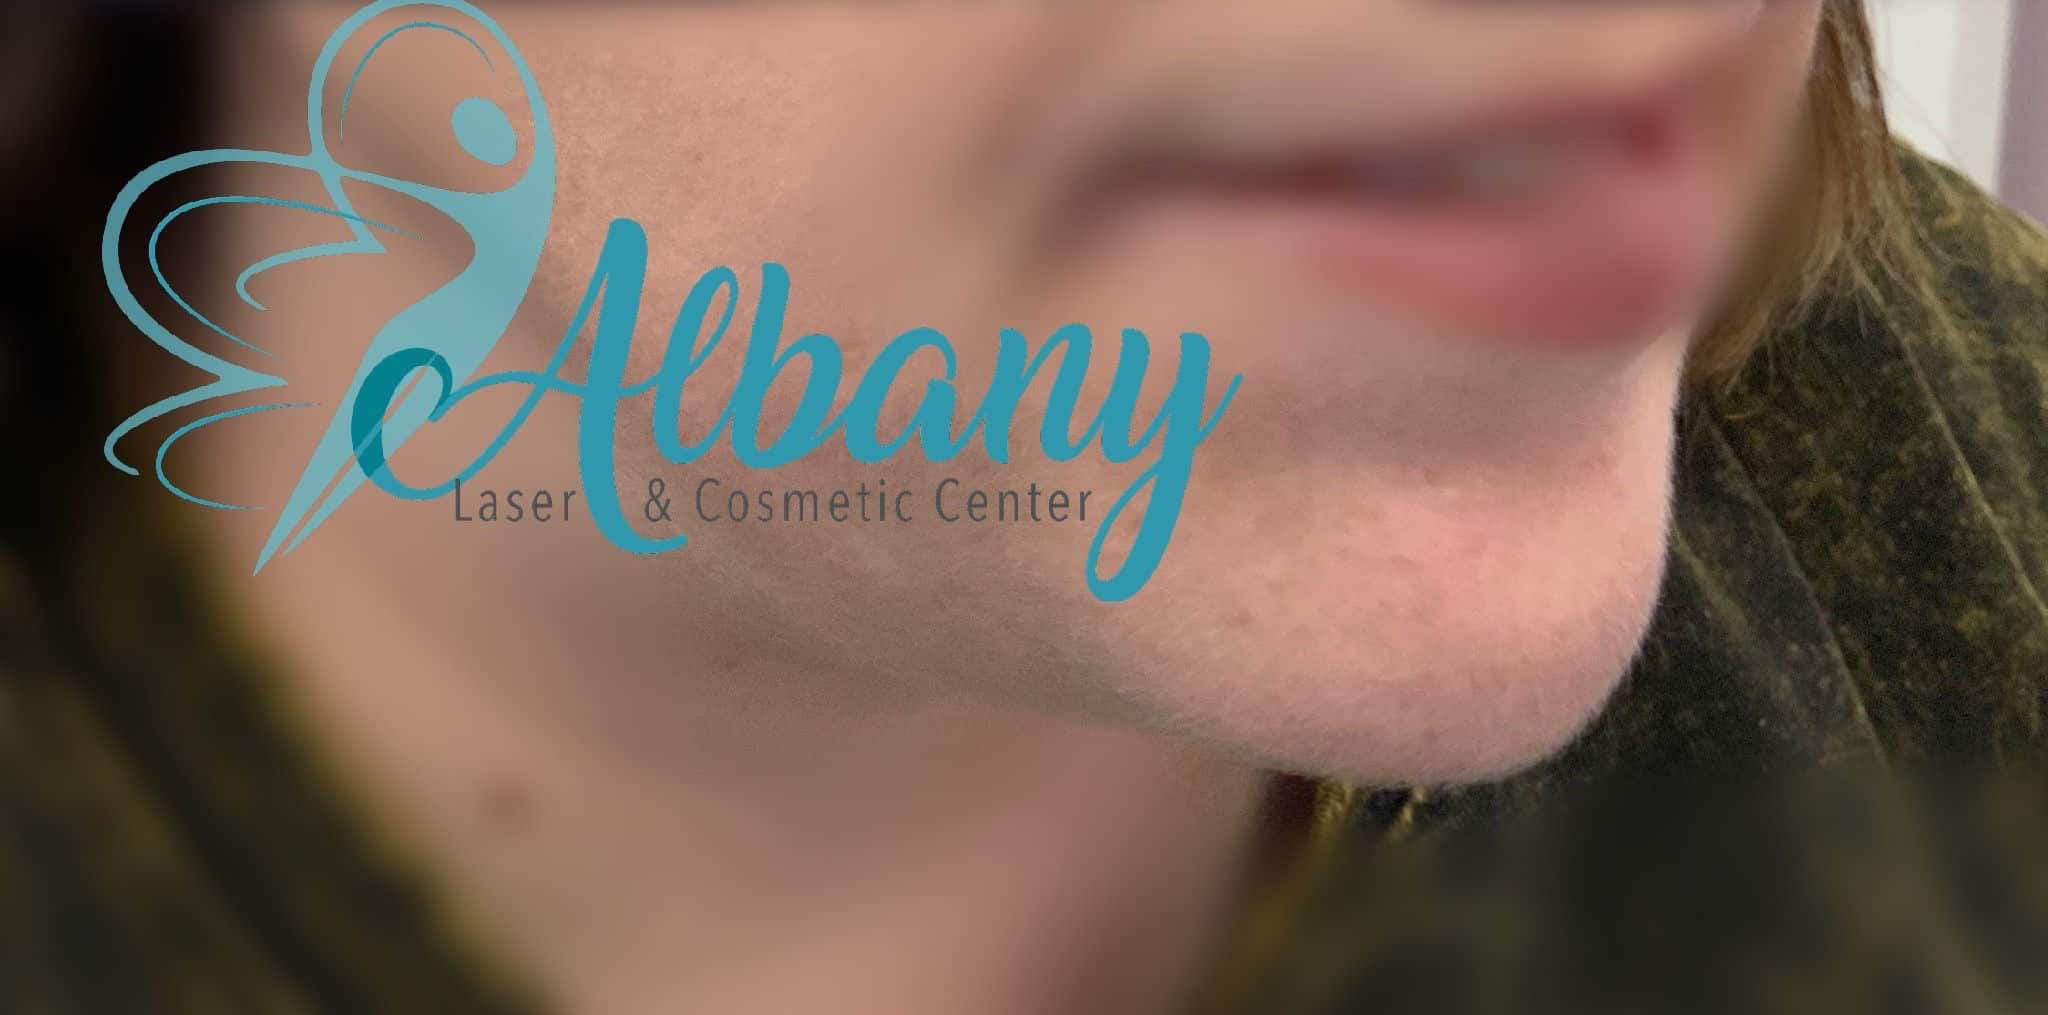 After Chin fillers injection